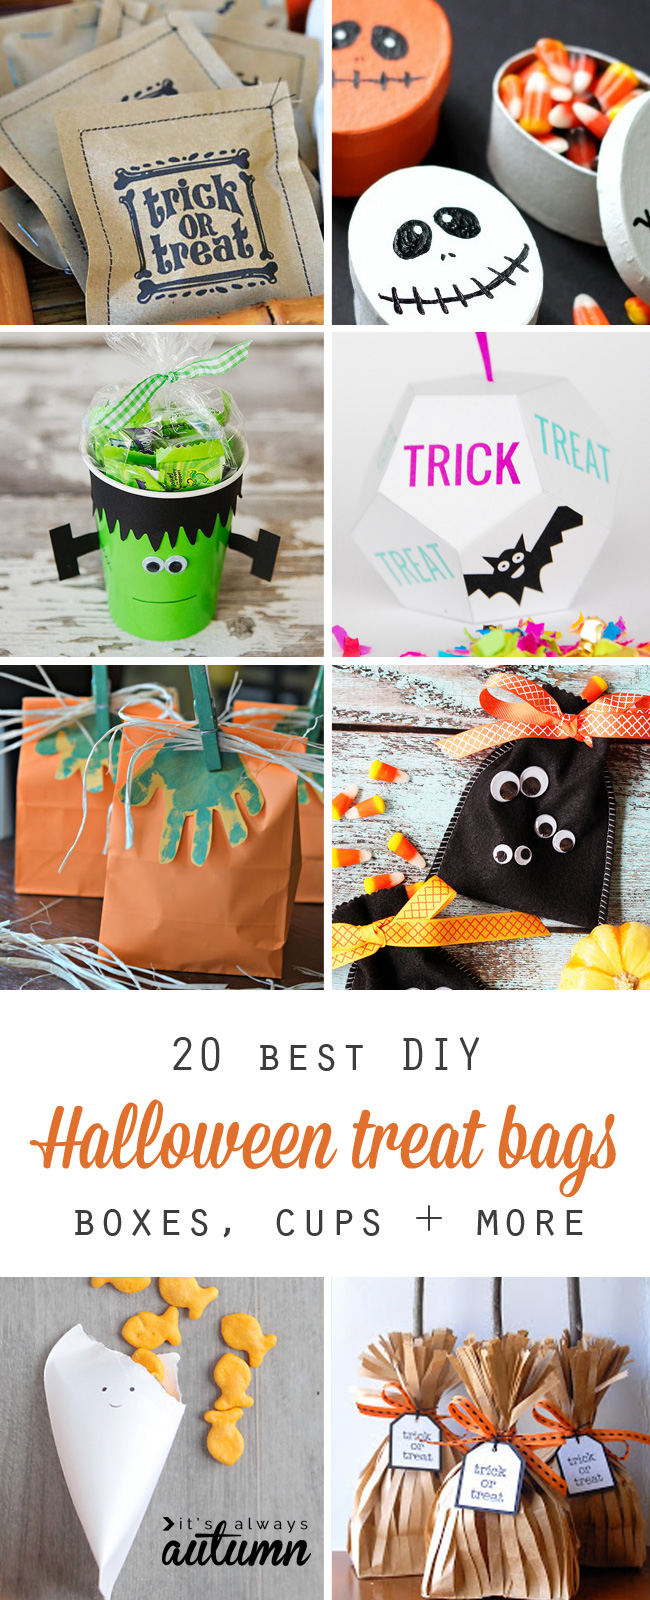 collage of DIY Halloween treat containers